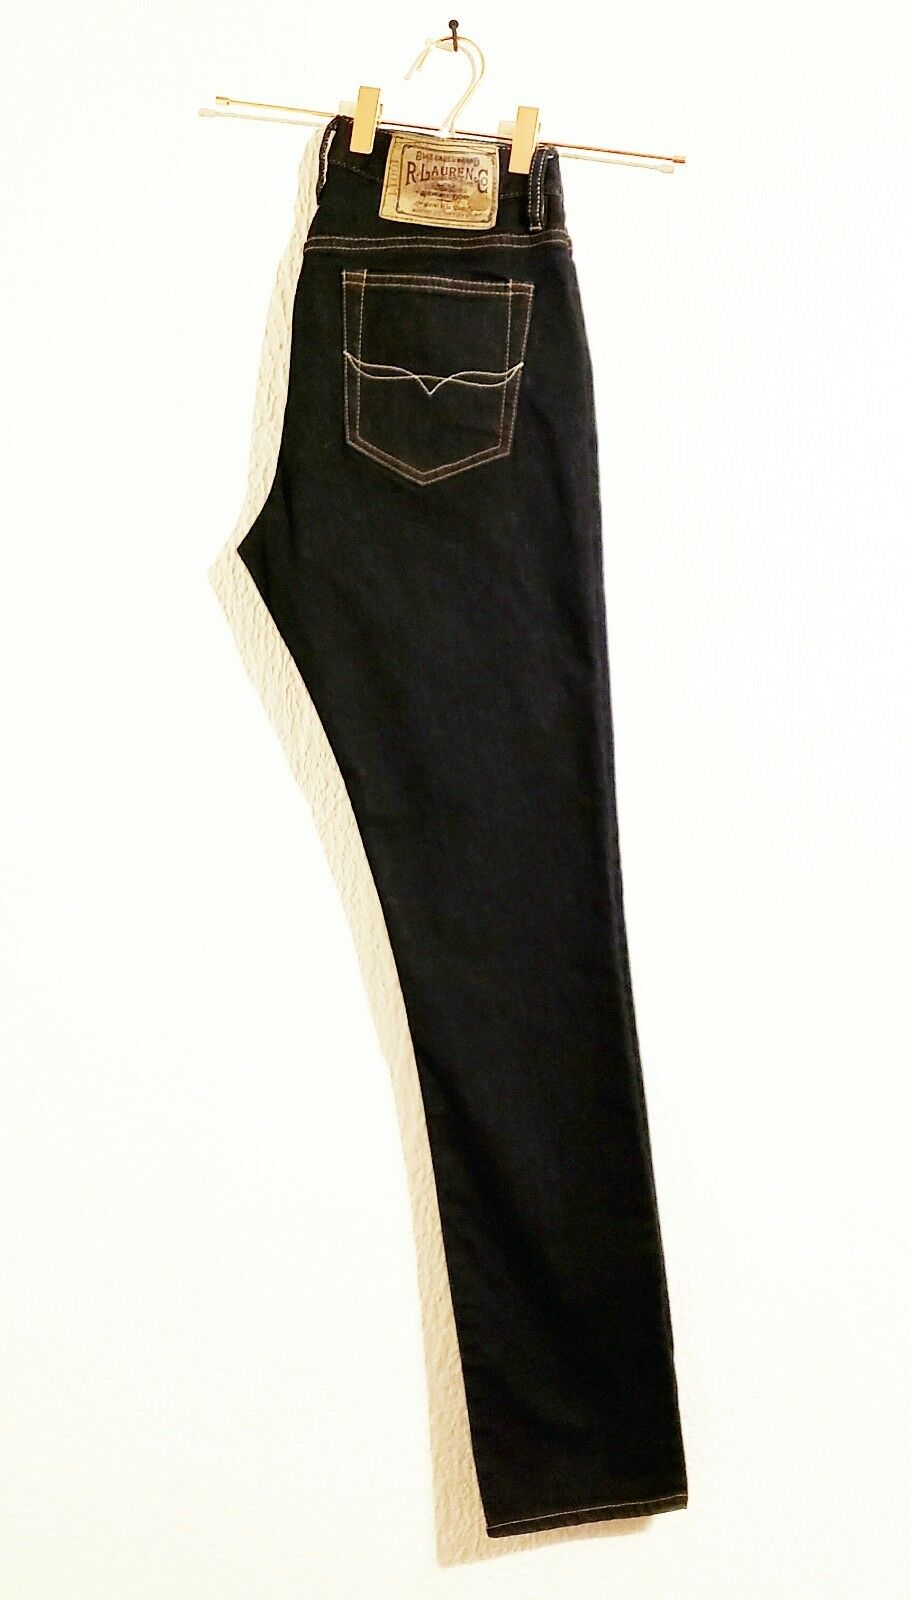 Ralph Lauren bluee Label Jeans Women's Size 29  V46